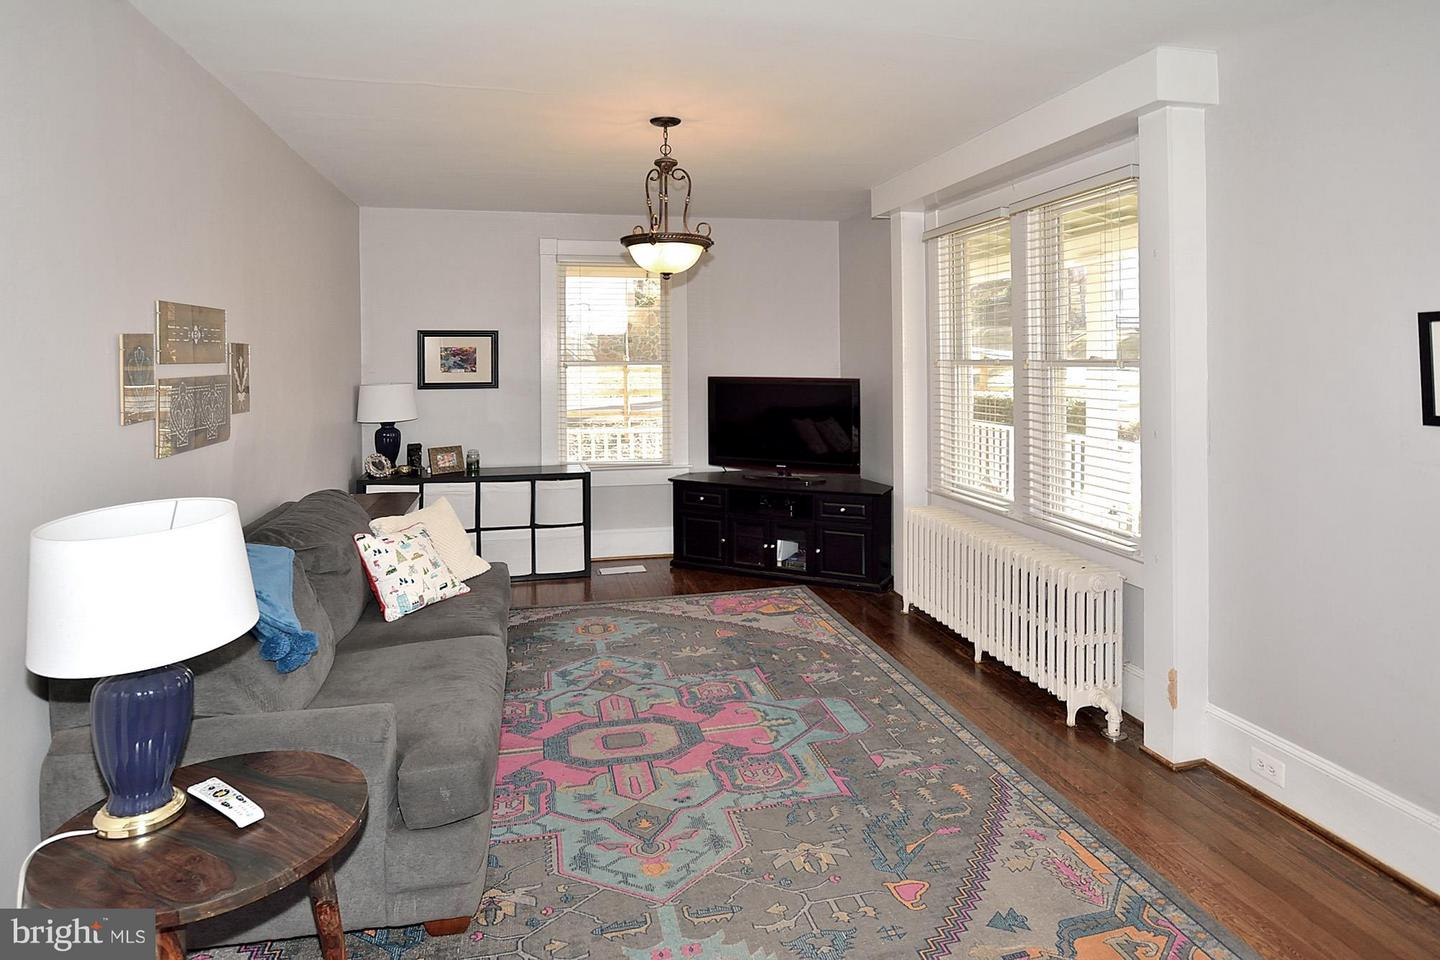 Additional photo for property listing at 211 Waterloo St 211 Waterloo St Warrenton, Virginia 20186 United States